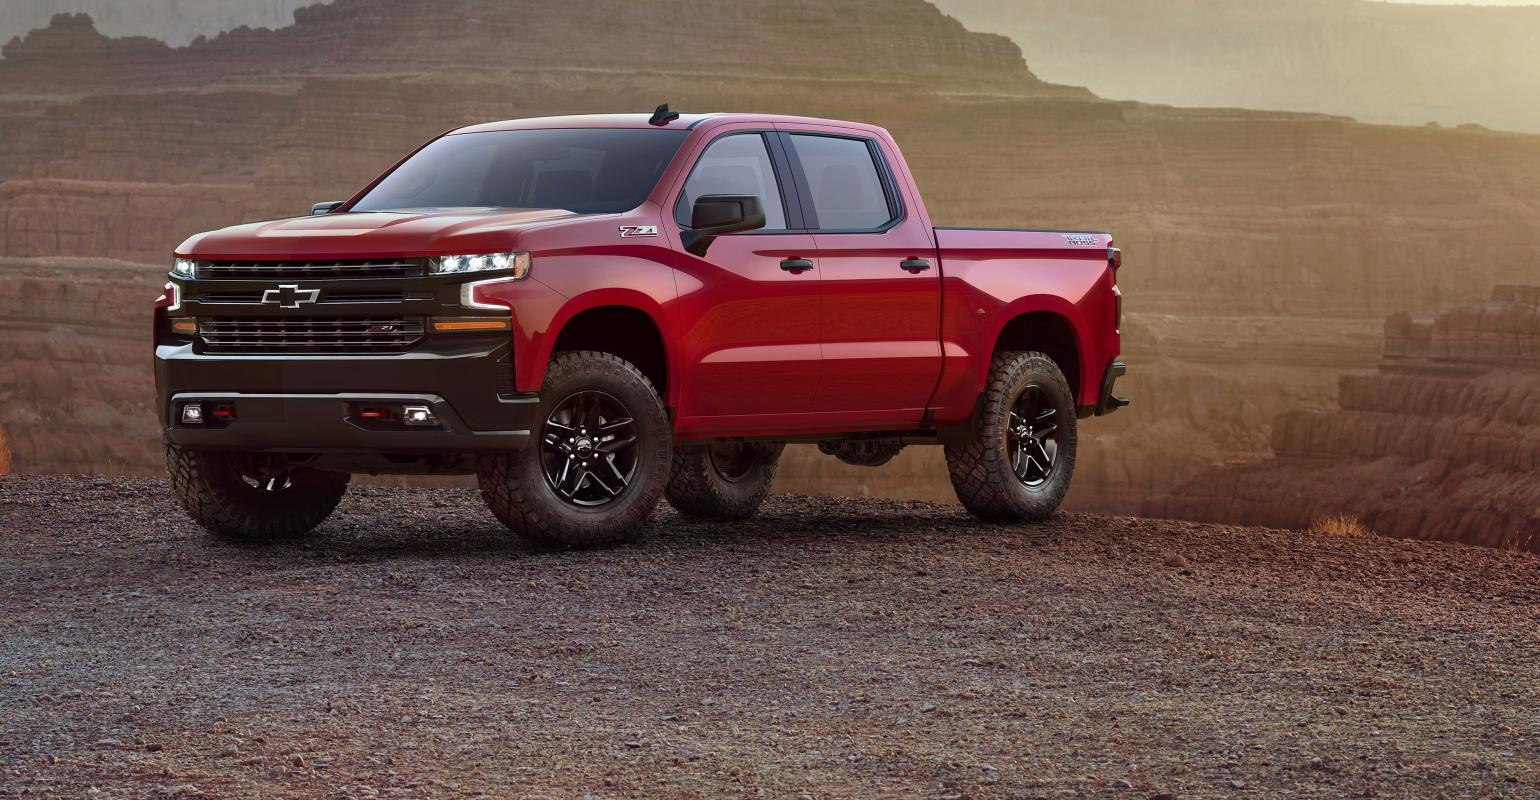 Gm S All New 19 Chevrolet Silverado Benefits From Technological Advances In Ices